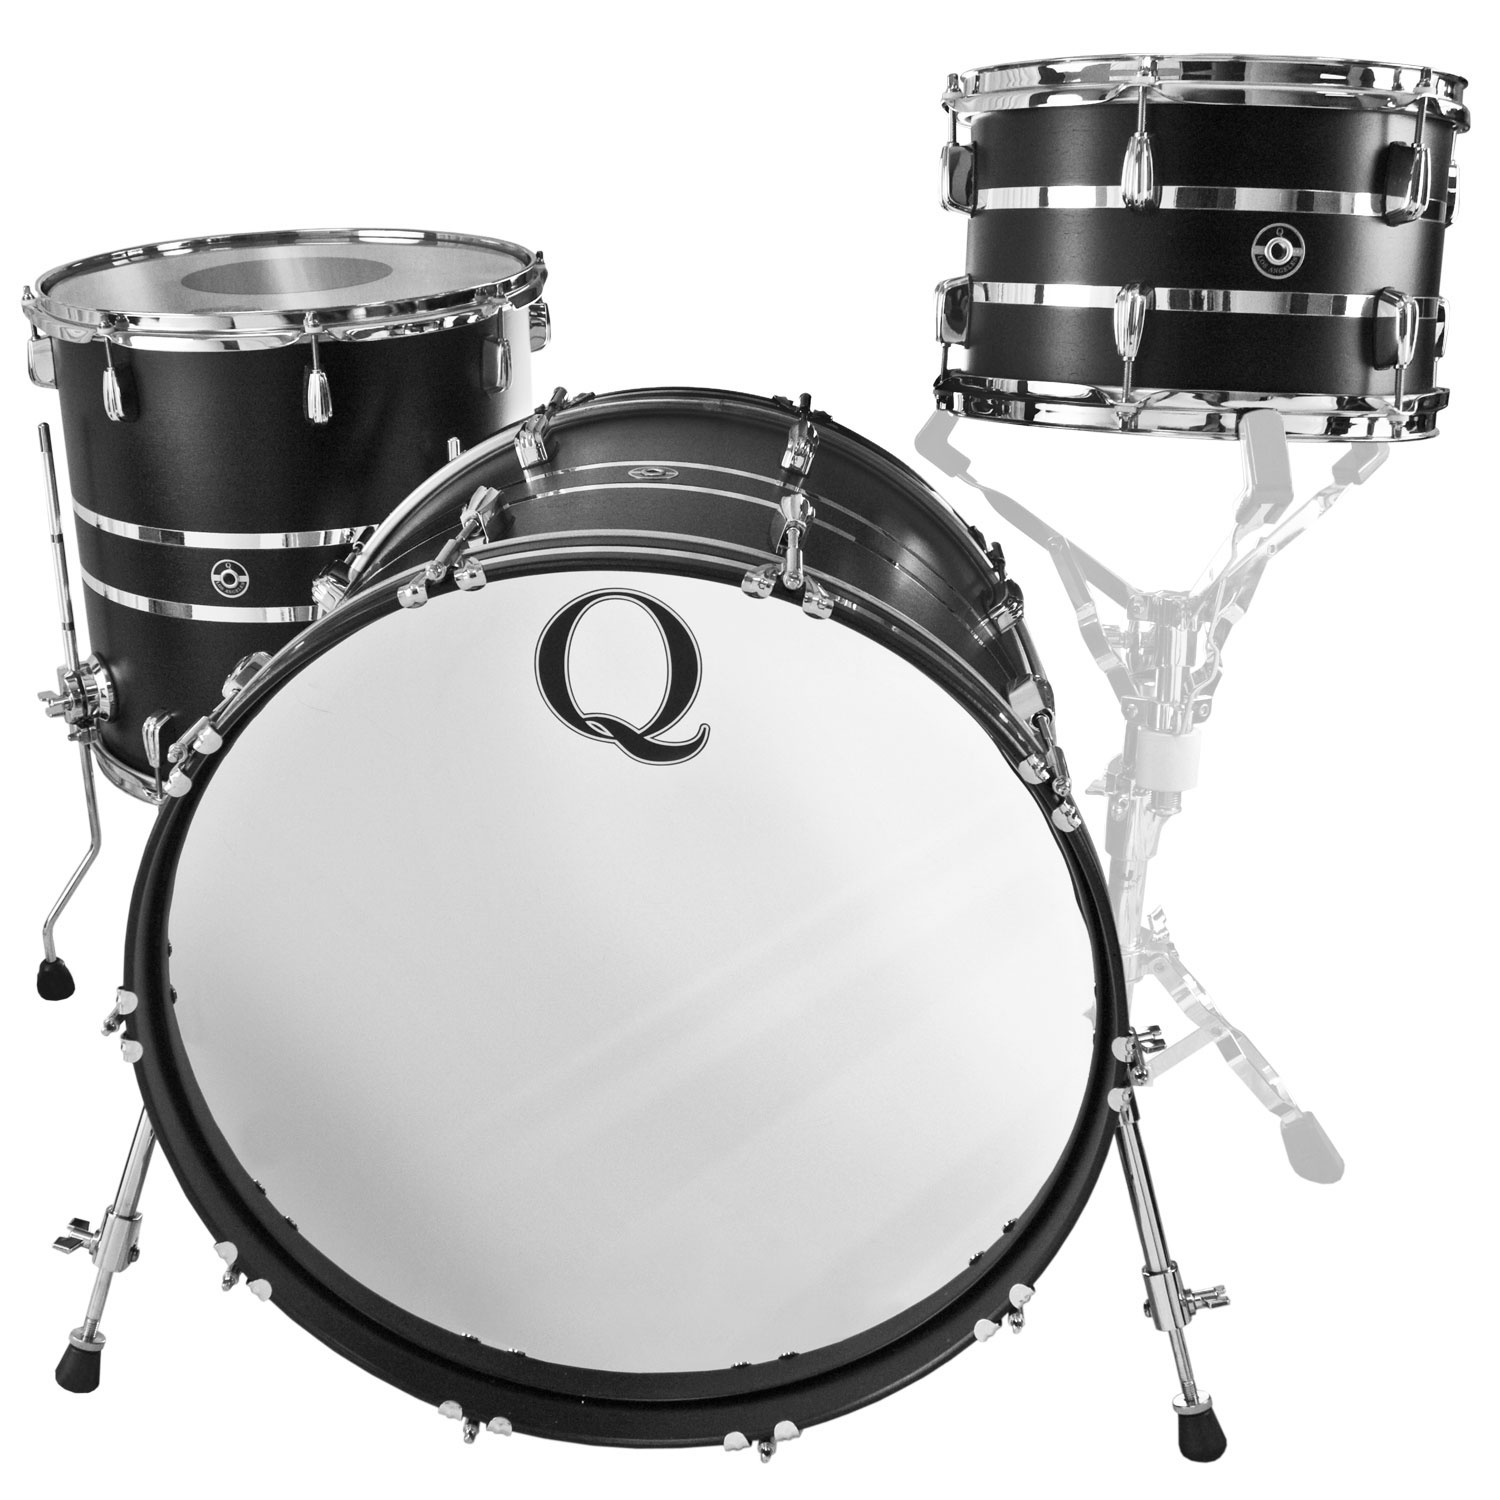 "Q Drum Co. Mahogany/Poplar 3-Piece Drum Set Shell Pack (22"" Bass, 12/16"" Toms) in Black Satin with Two Chrome Inlays"